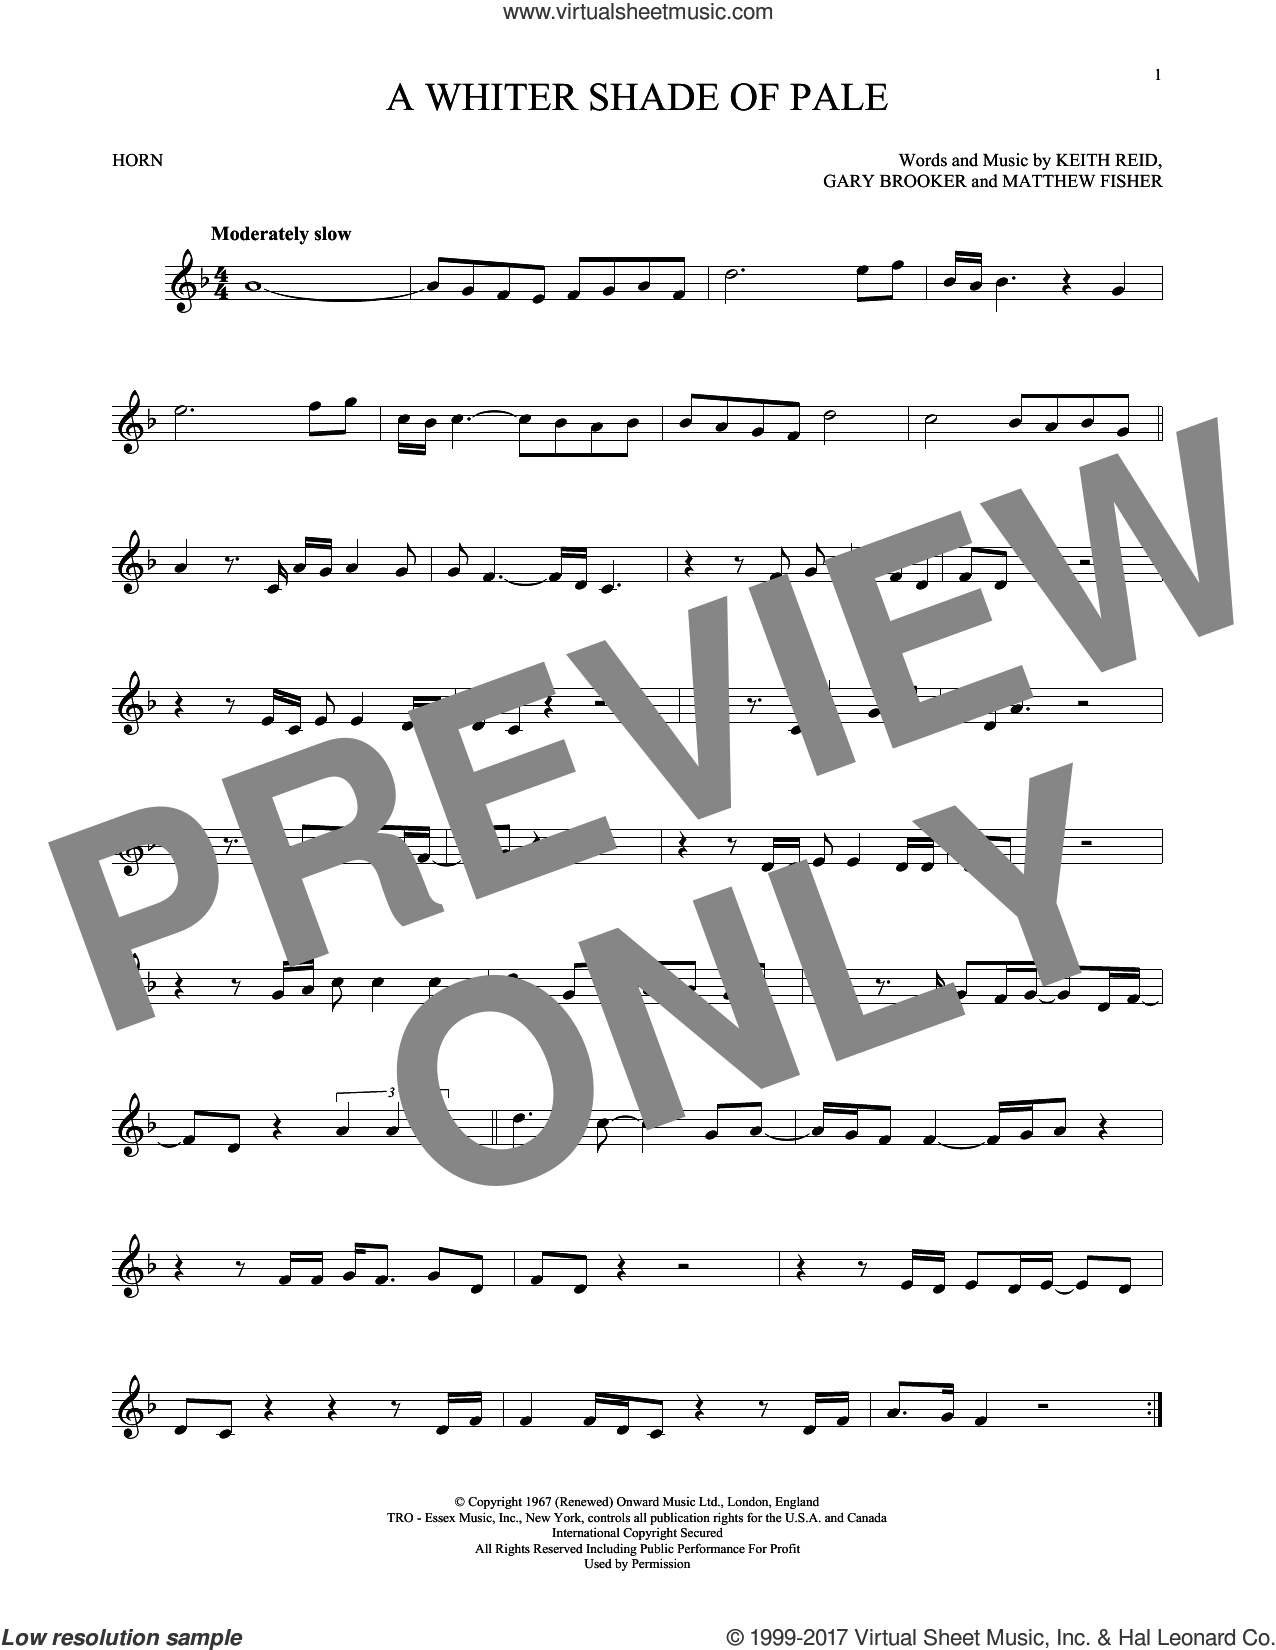 A Whiter Shade Of Pale sheet music for horn solo by Procol Harum, Gary Brooker, Keith Reid and Matthew Fisher, intermediate skill level